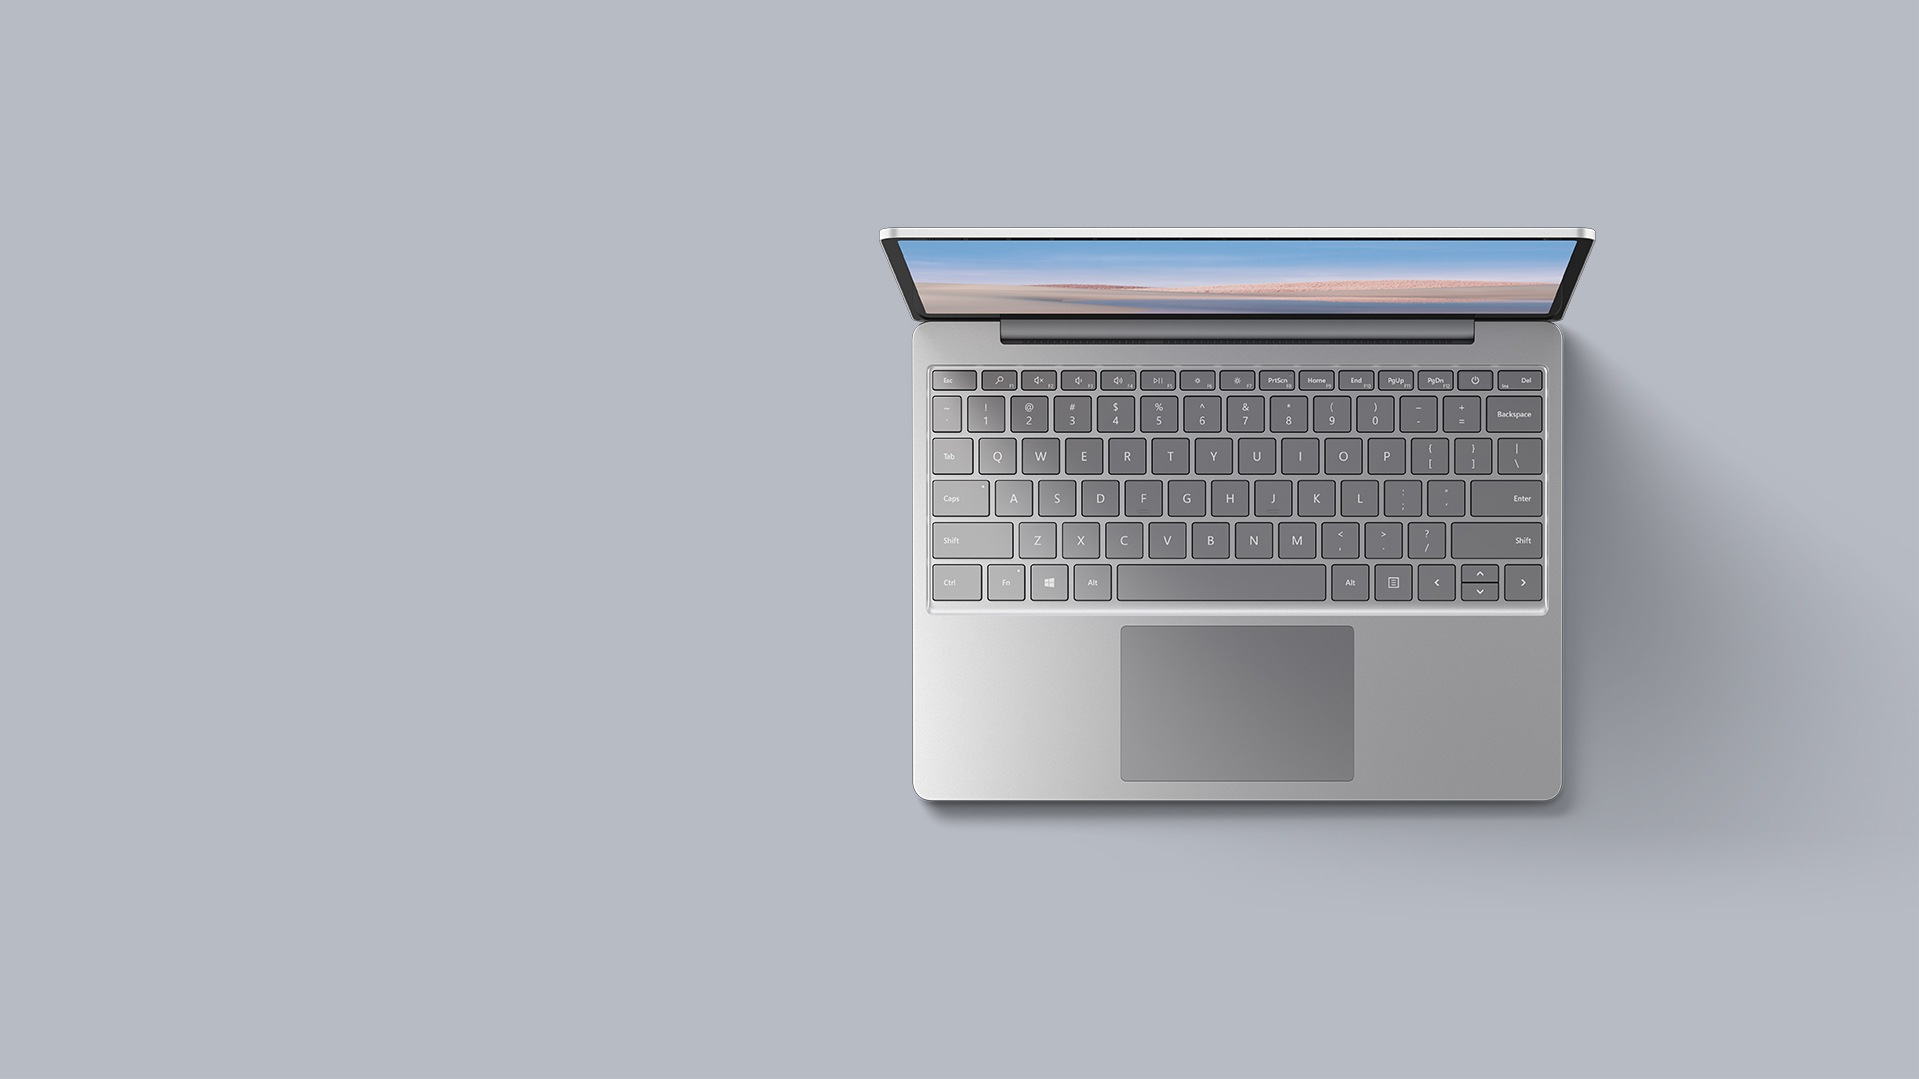 An aerial view of the platinum Surface Laptop Go resting upon a matching background.